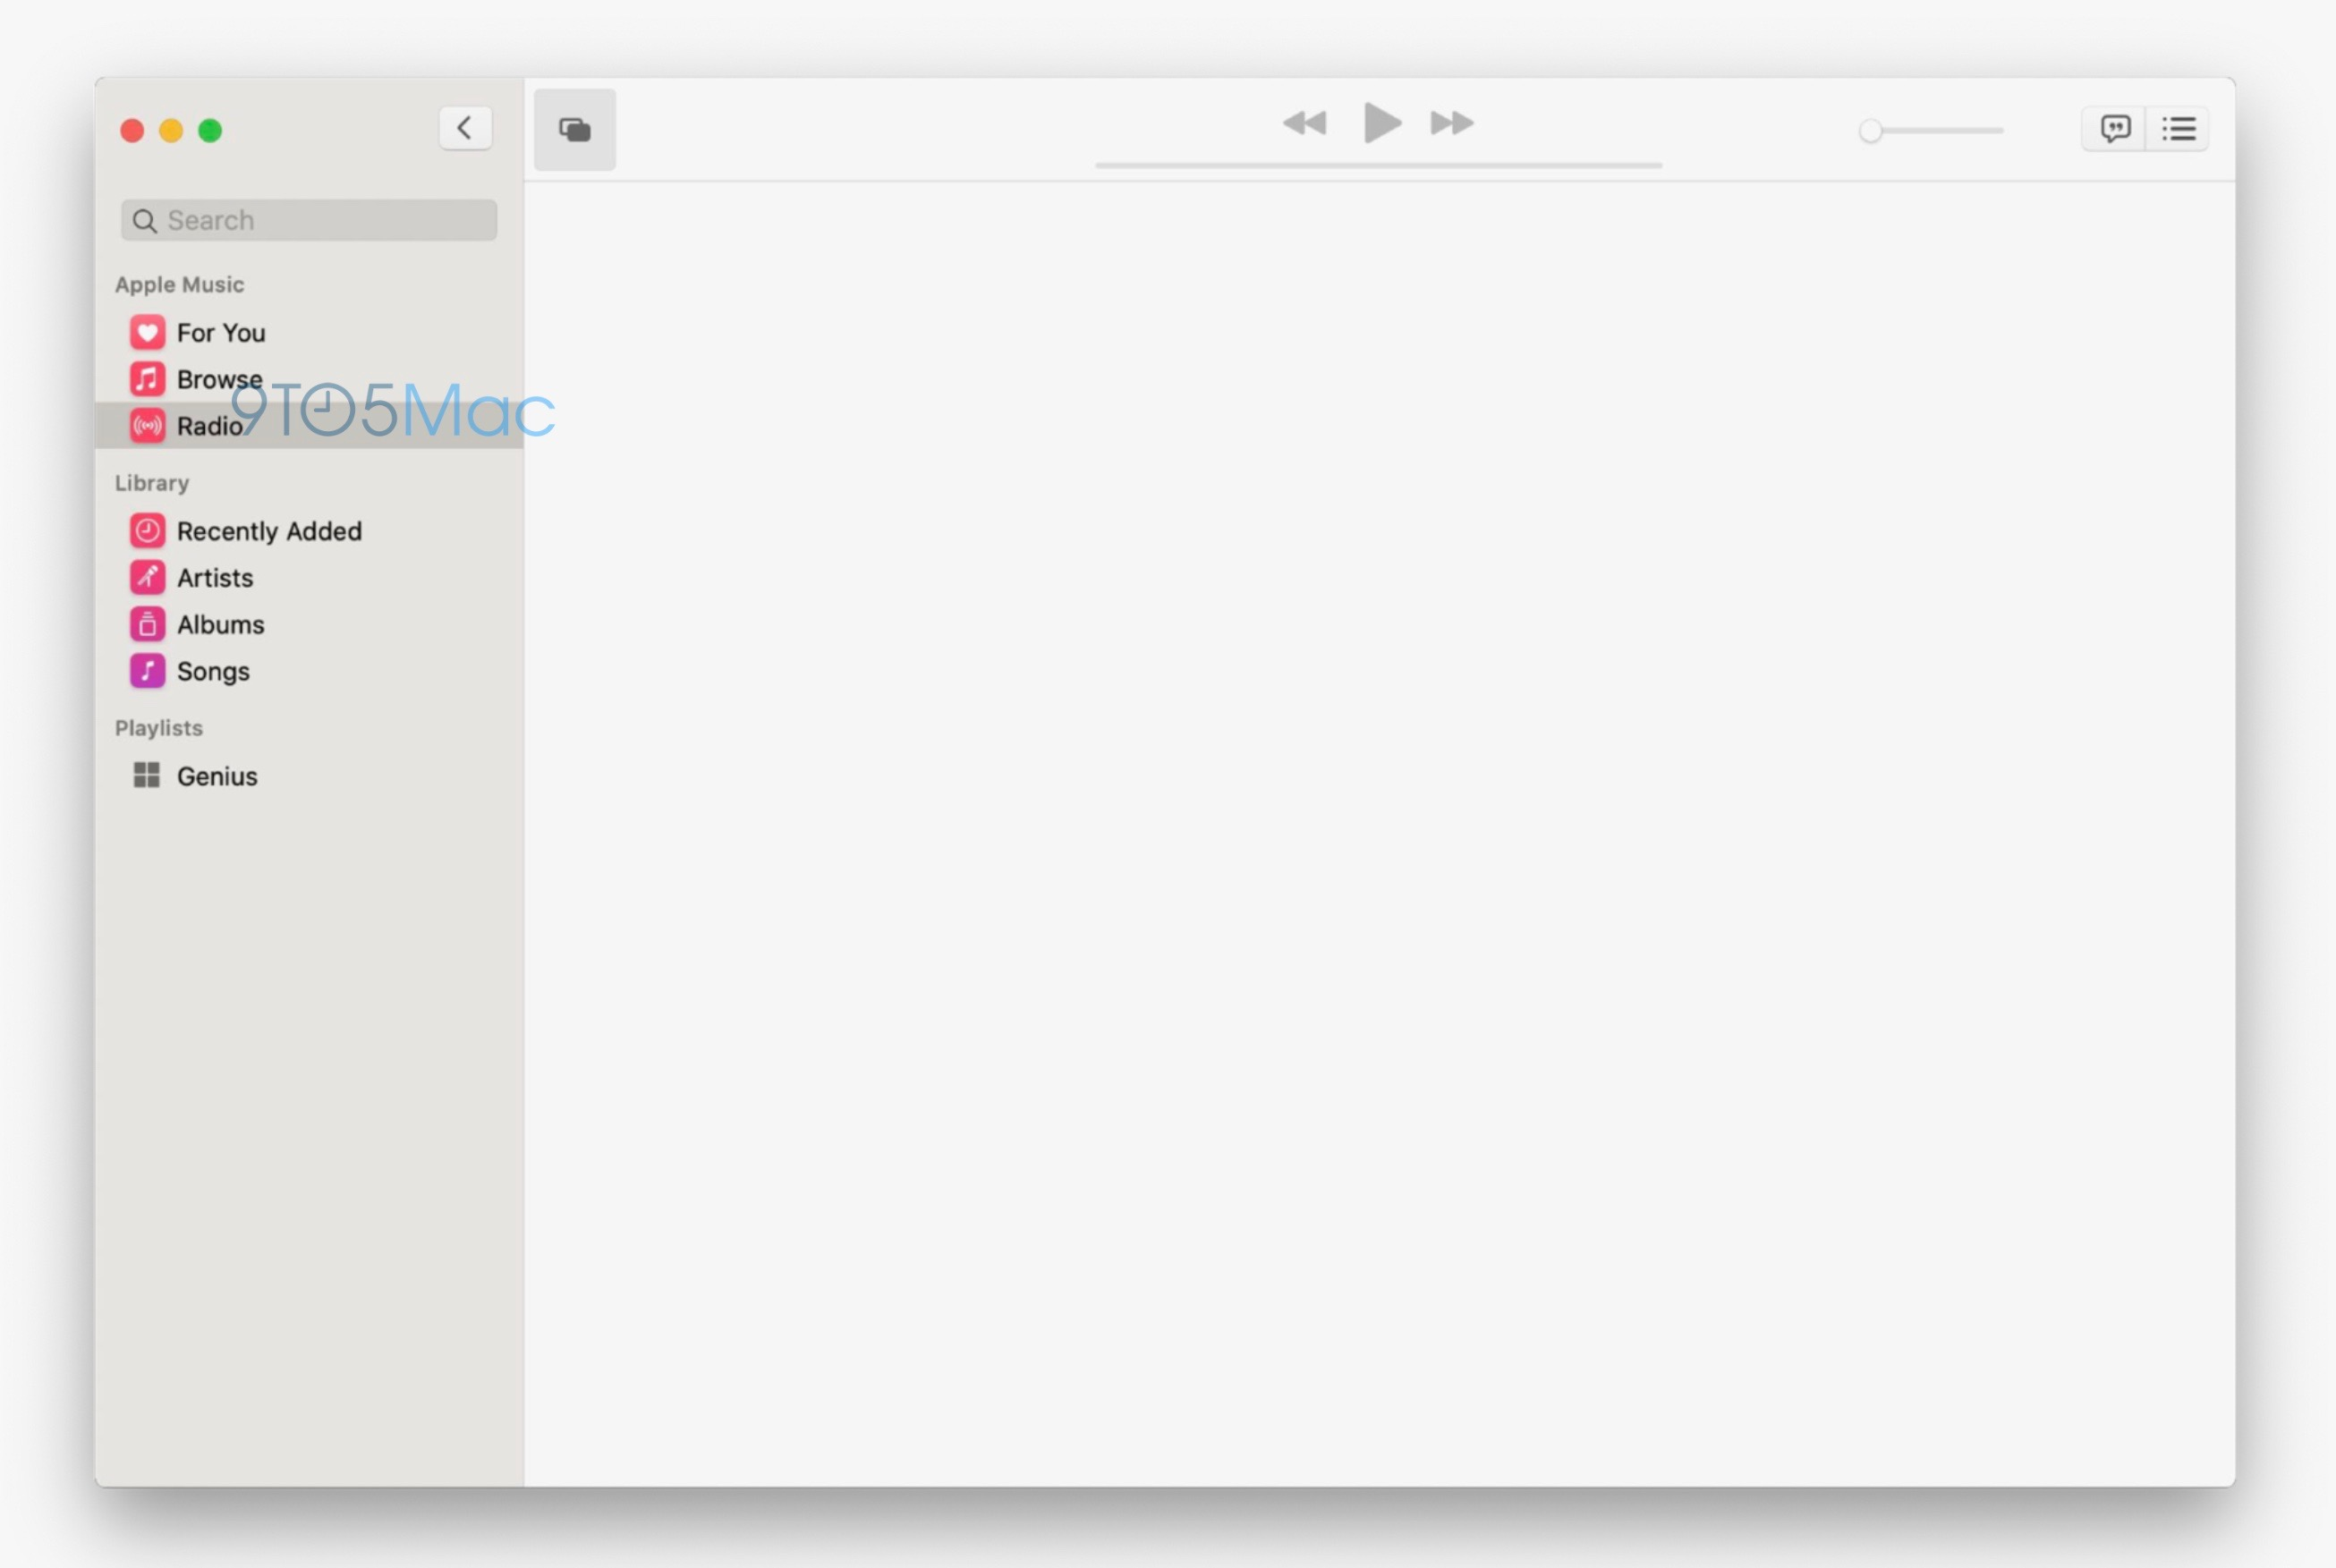 Music App Tv App Macos 10 15 Screenshot Leaks Img 1